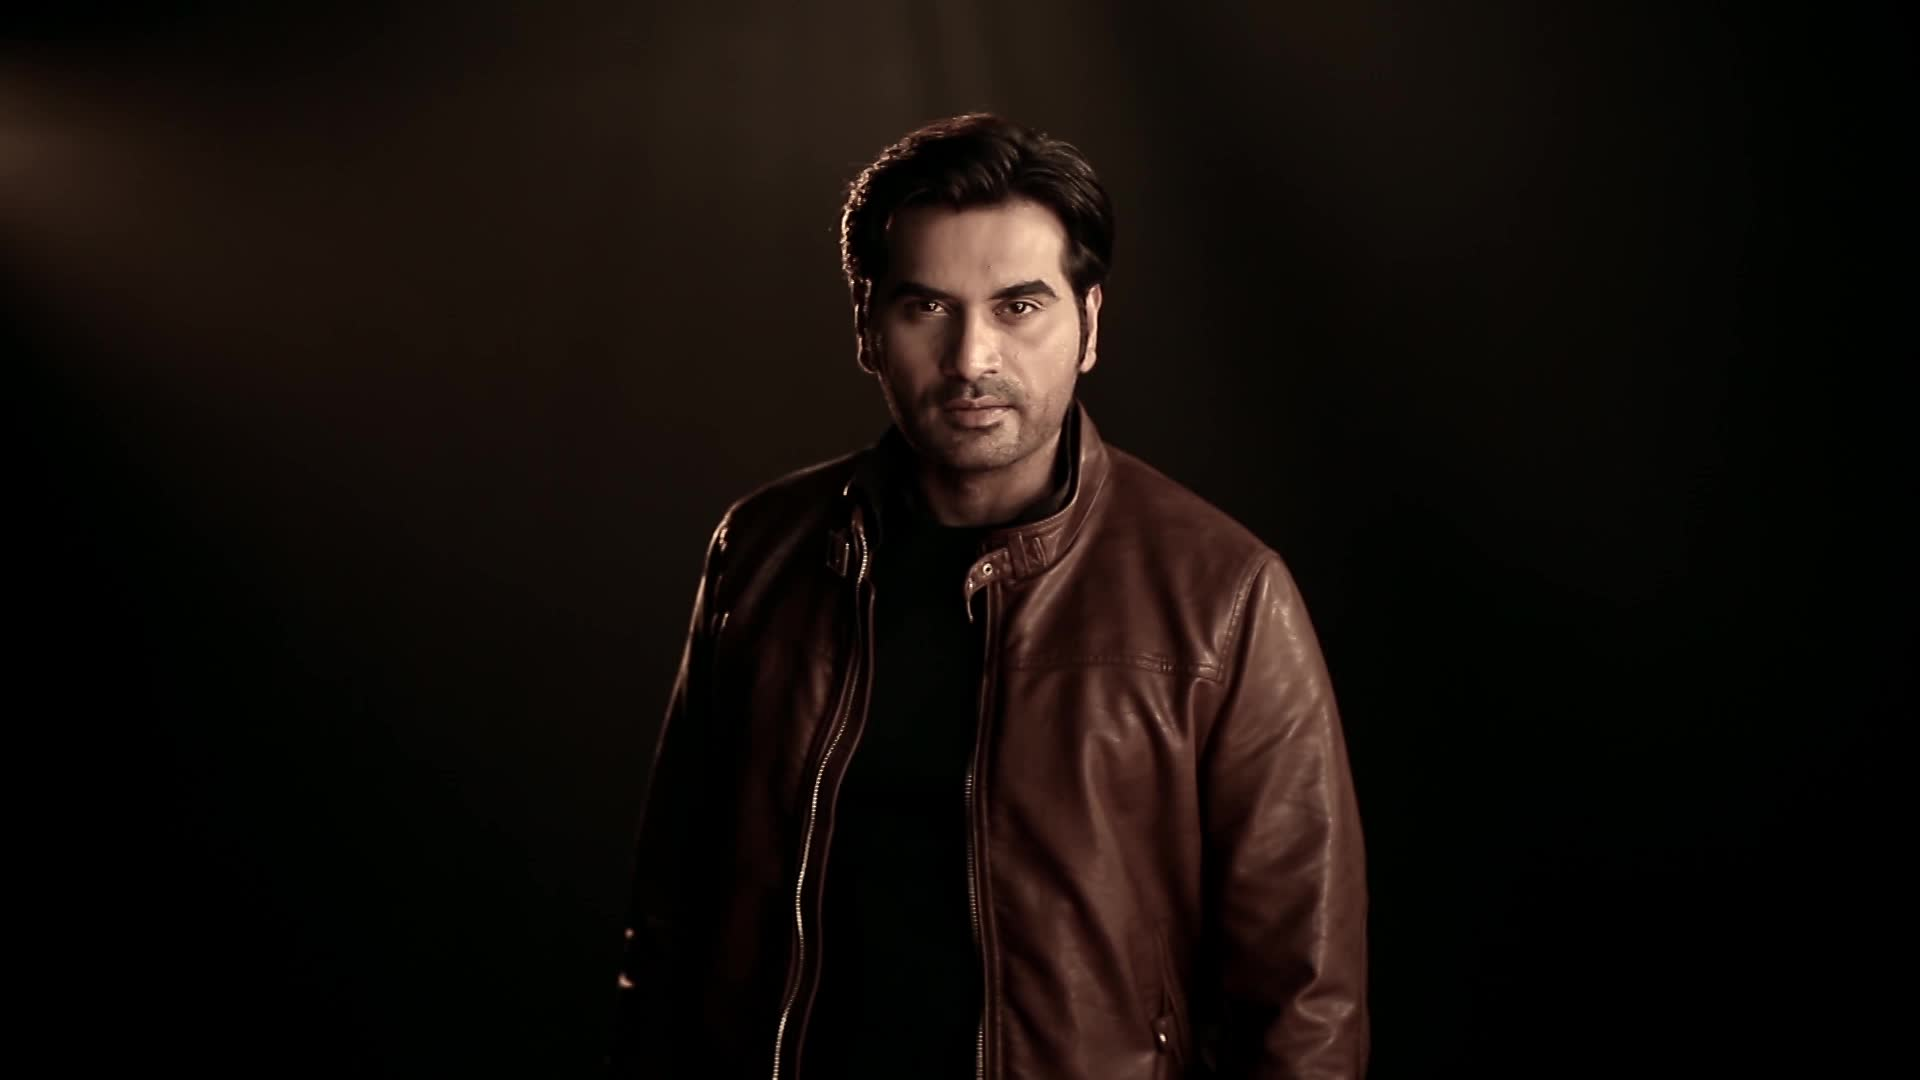 want to see more of fawad khan in pakistani films humayun saeed